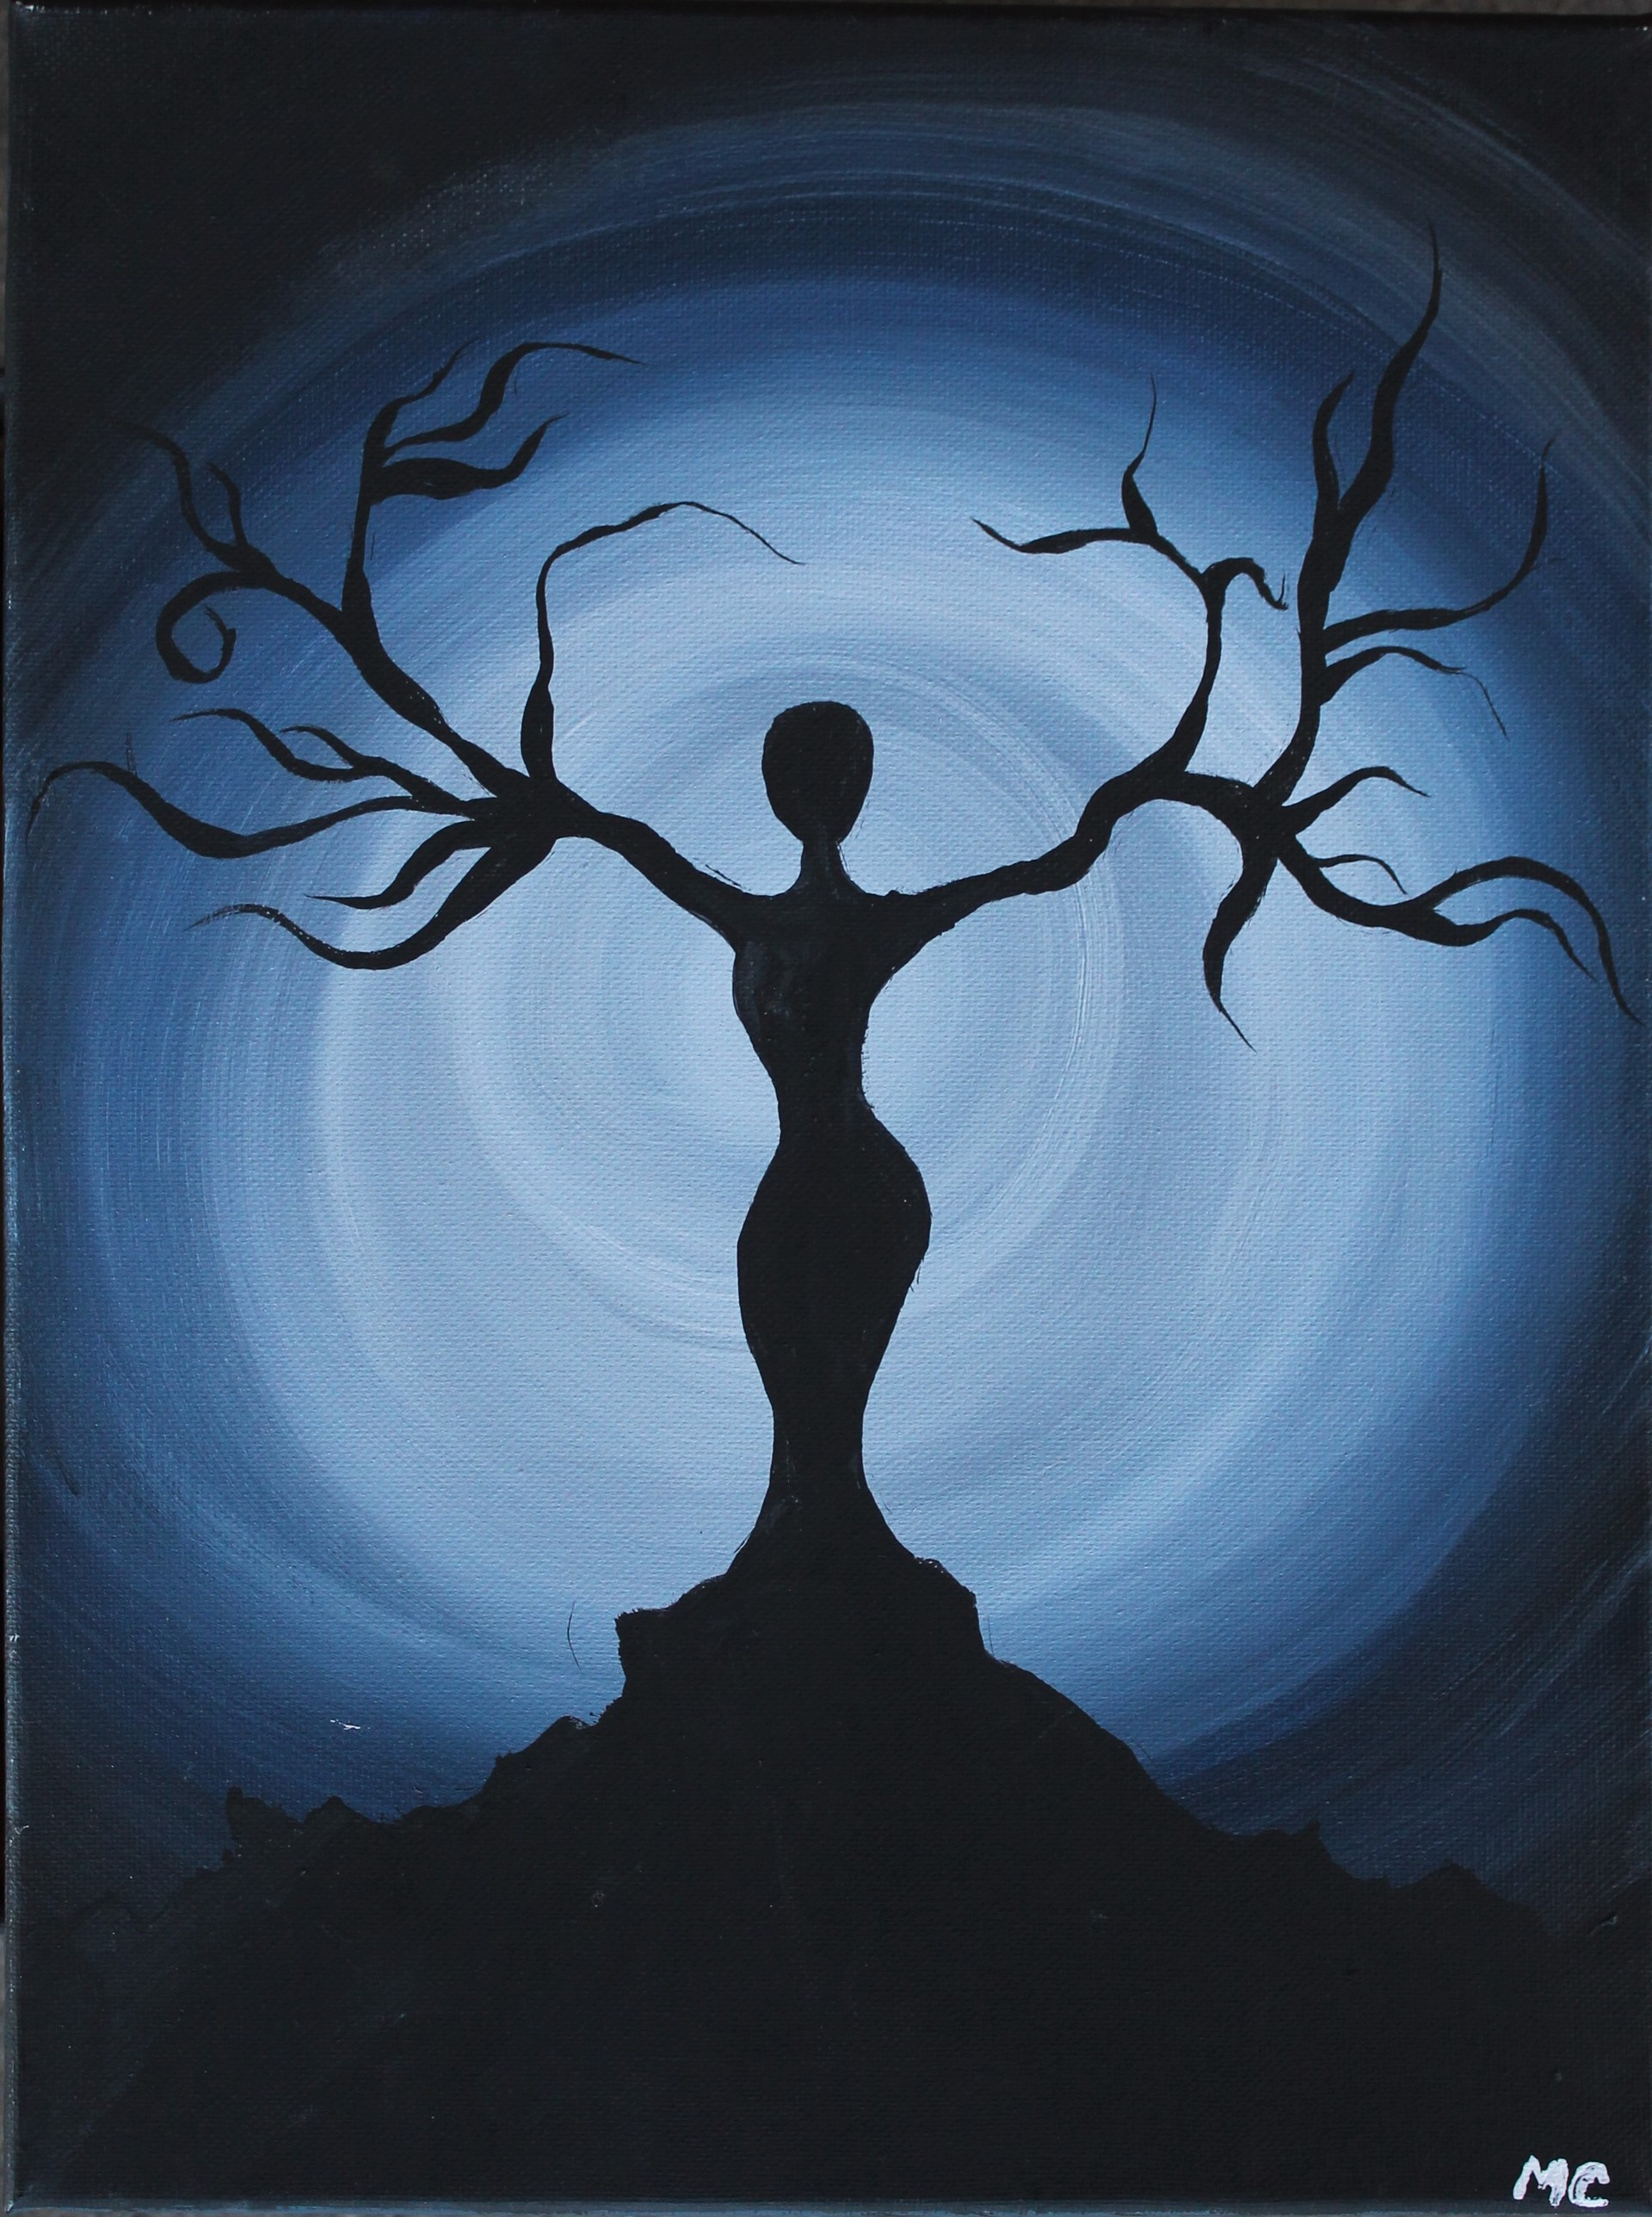 Student Artwork-Painting of a woman growing into a tree